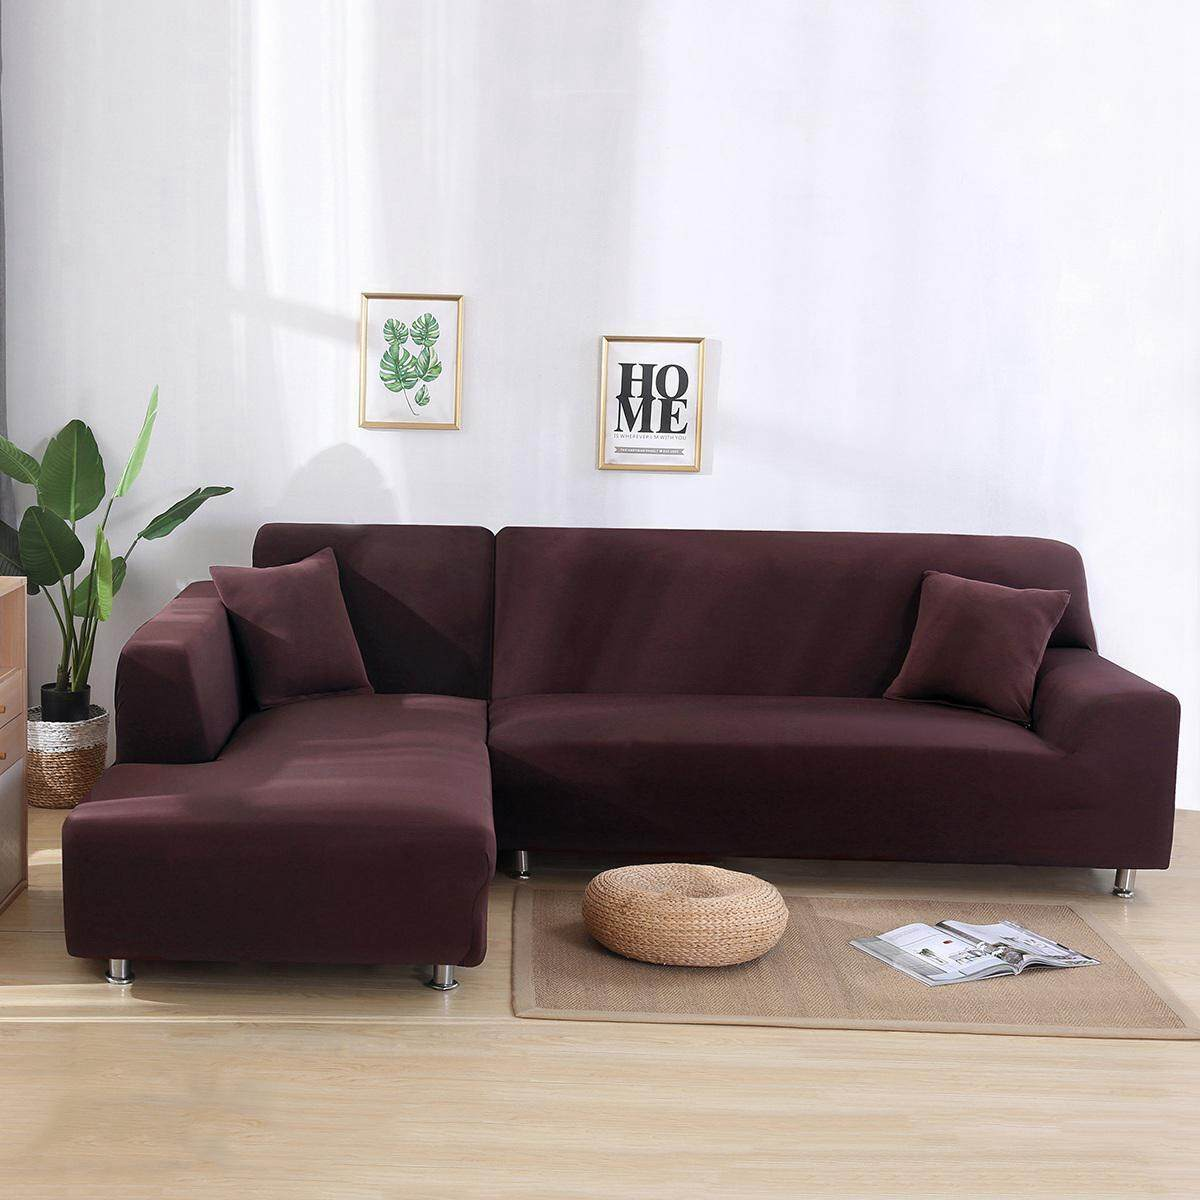 NiceToEmpty [Hot Sale]3 Seater L Shape Stretch Elastic Fabric Sofa Cover Pet Dog Sectional /Corner Couch Covers/Covers for Sofa Elastic Couch Shield,Furniture Protector